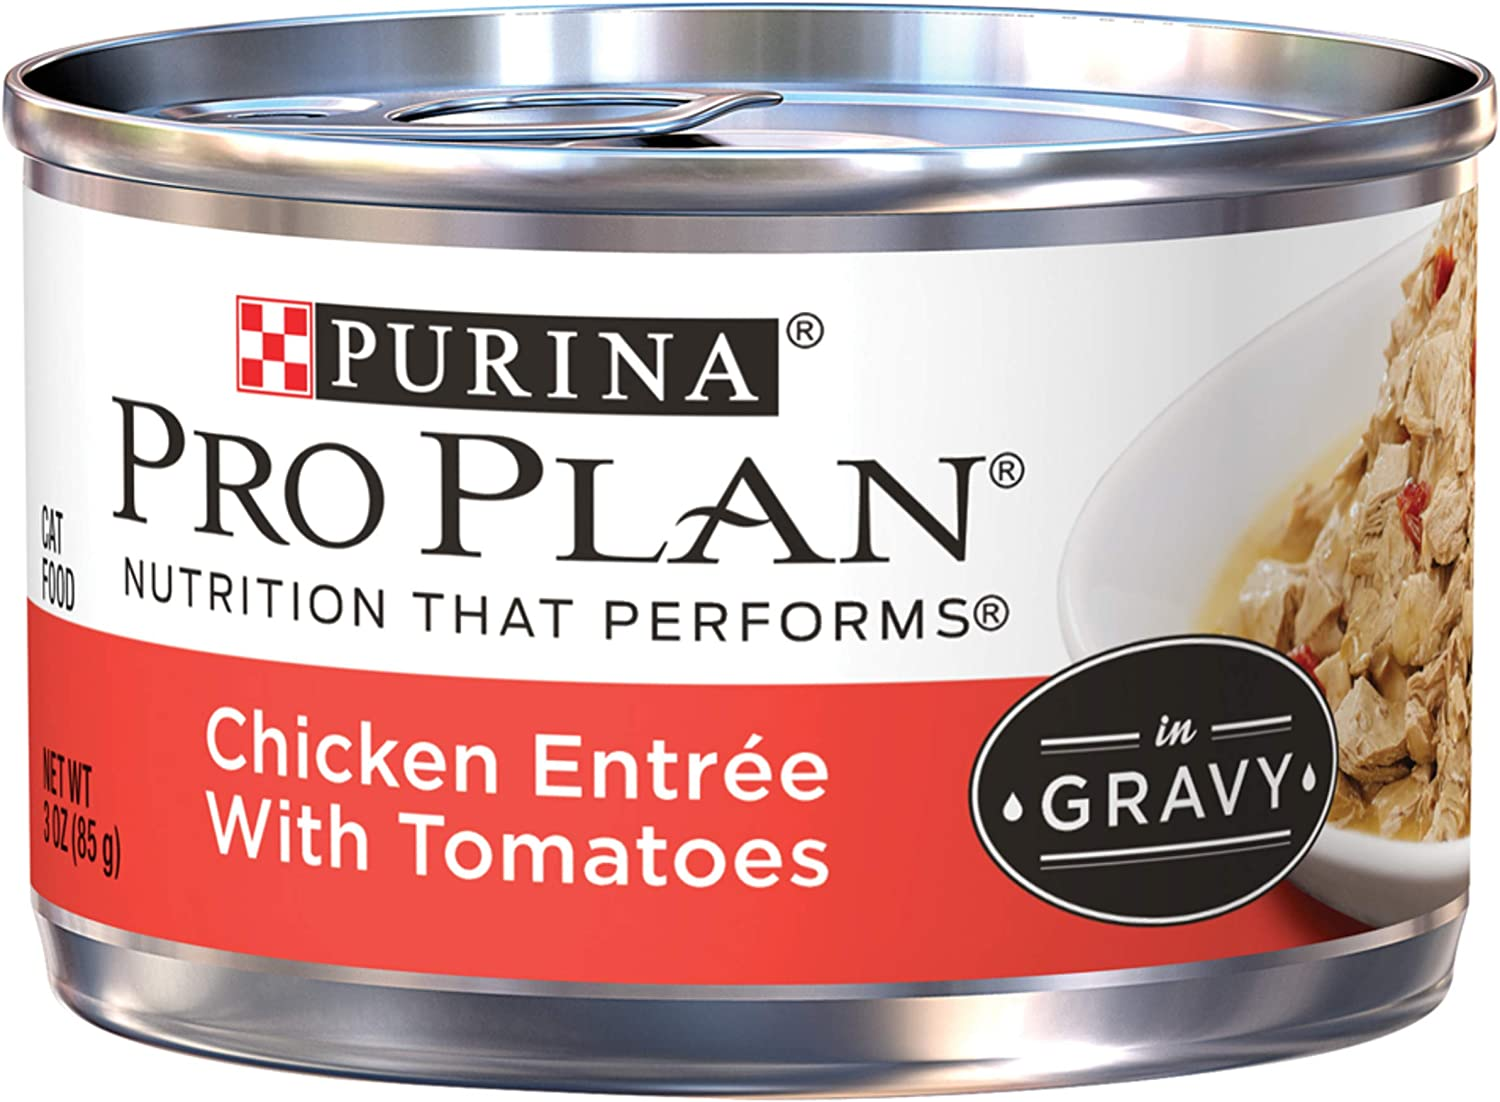 Purina Pro Plan Gravy Wet Cat Food, Chicken Entree With Tomatoes - (24) 3 oz. Pull-Top Cans